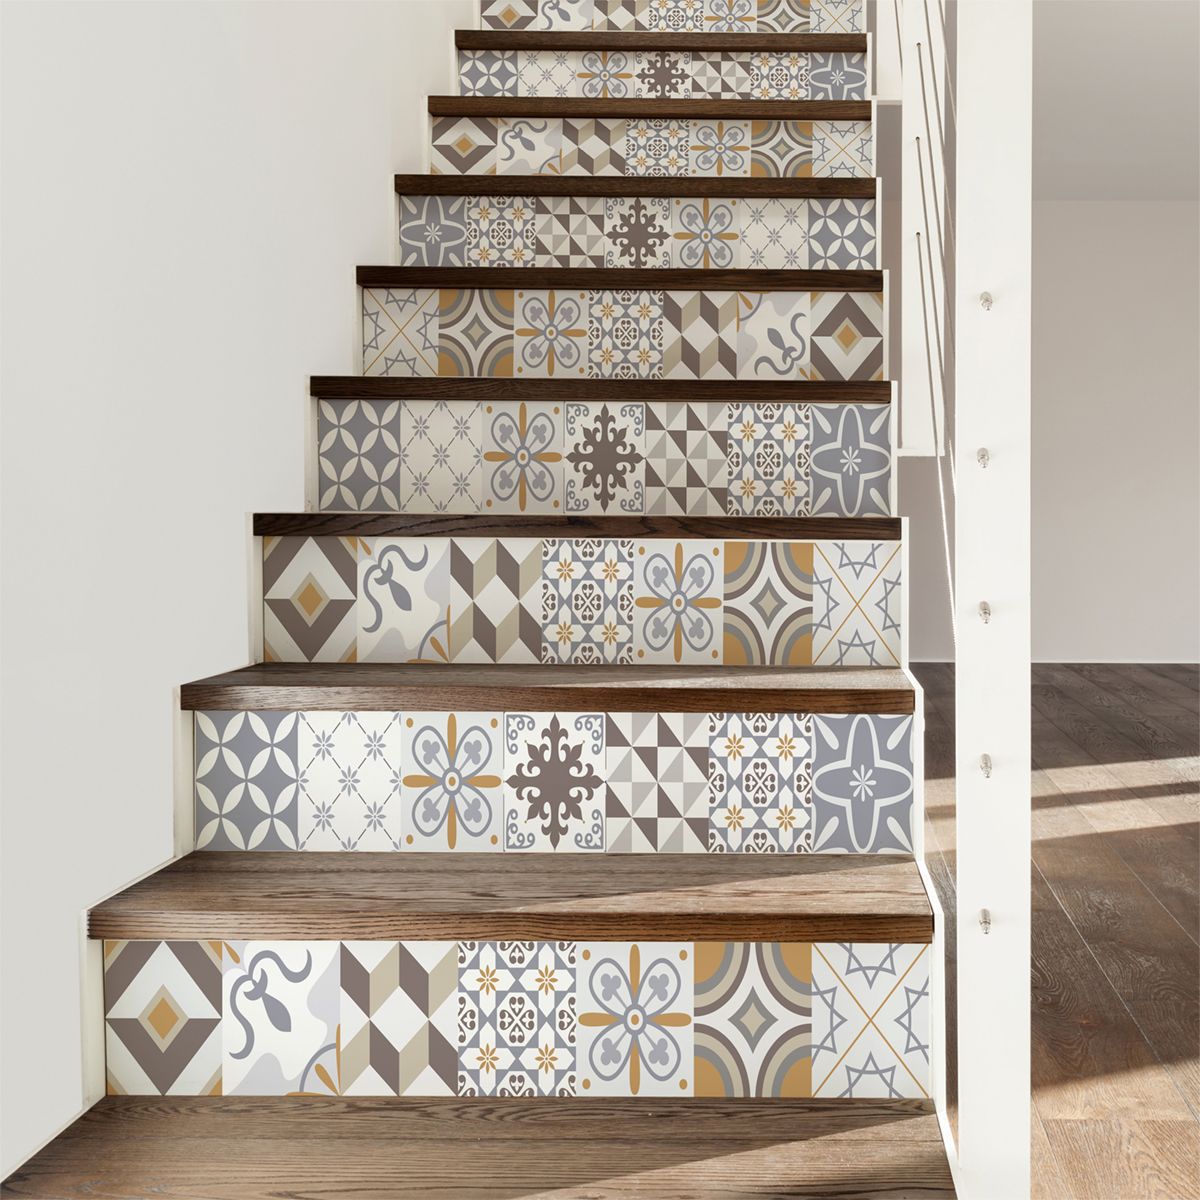 Stickers Escalier Carrelages Ornements Sobres X 2 Ambiance Sticker